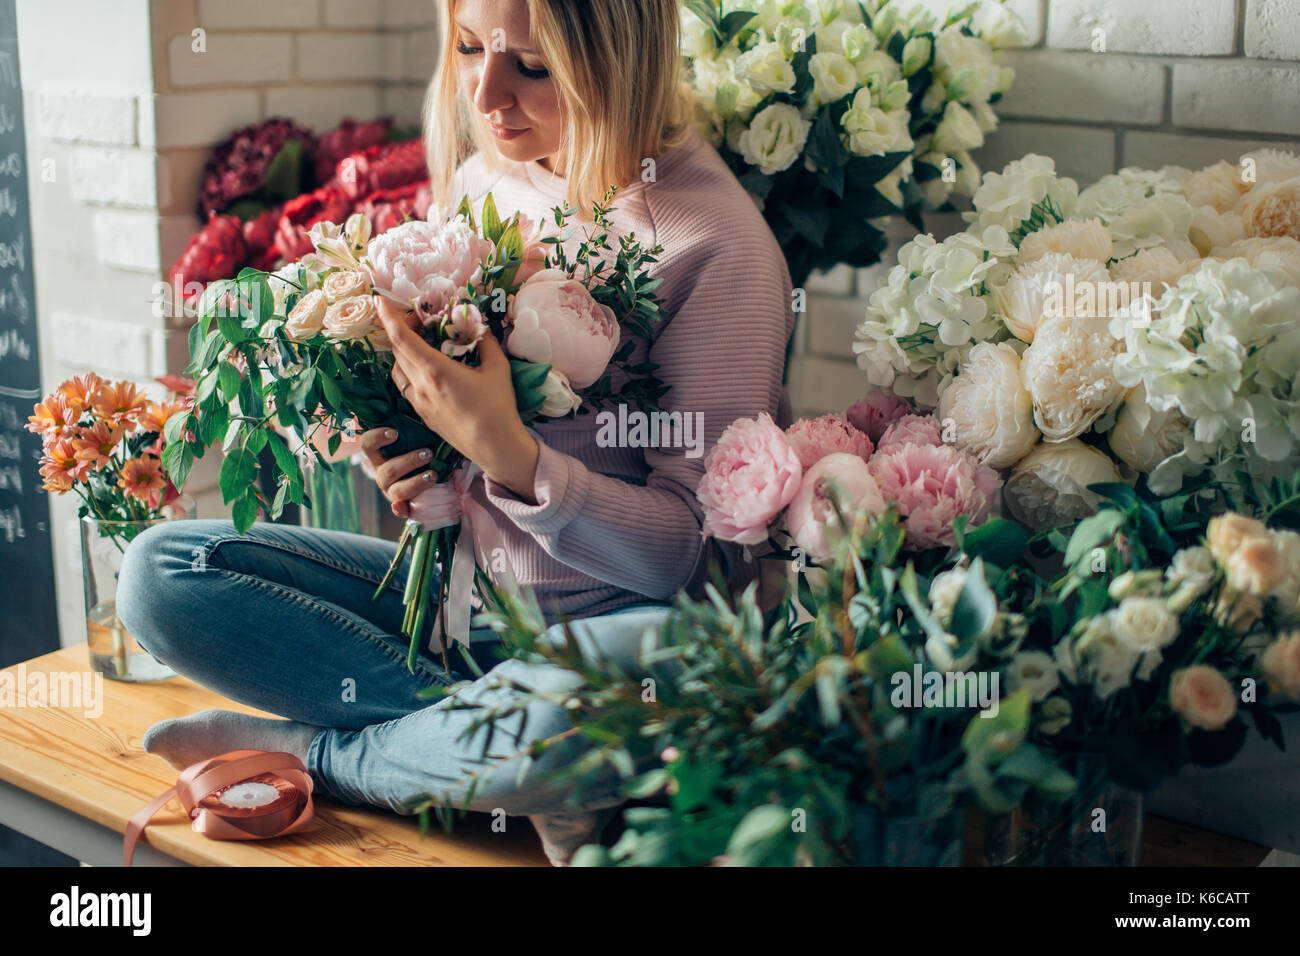 Florist shop in daylight. Woman holding beautiful bouquet of flowers. Florist with her work. Stylized tender photo with hipster filter. - Stock Image